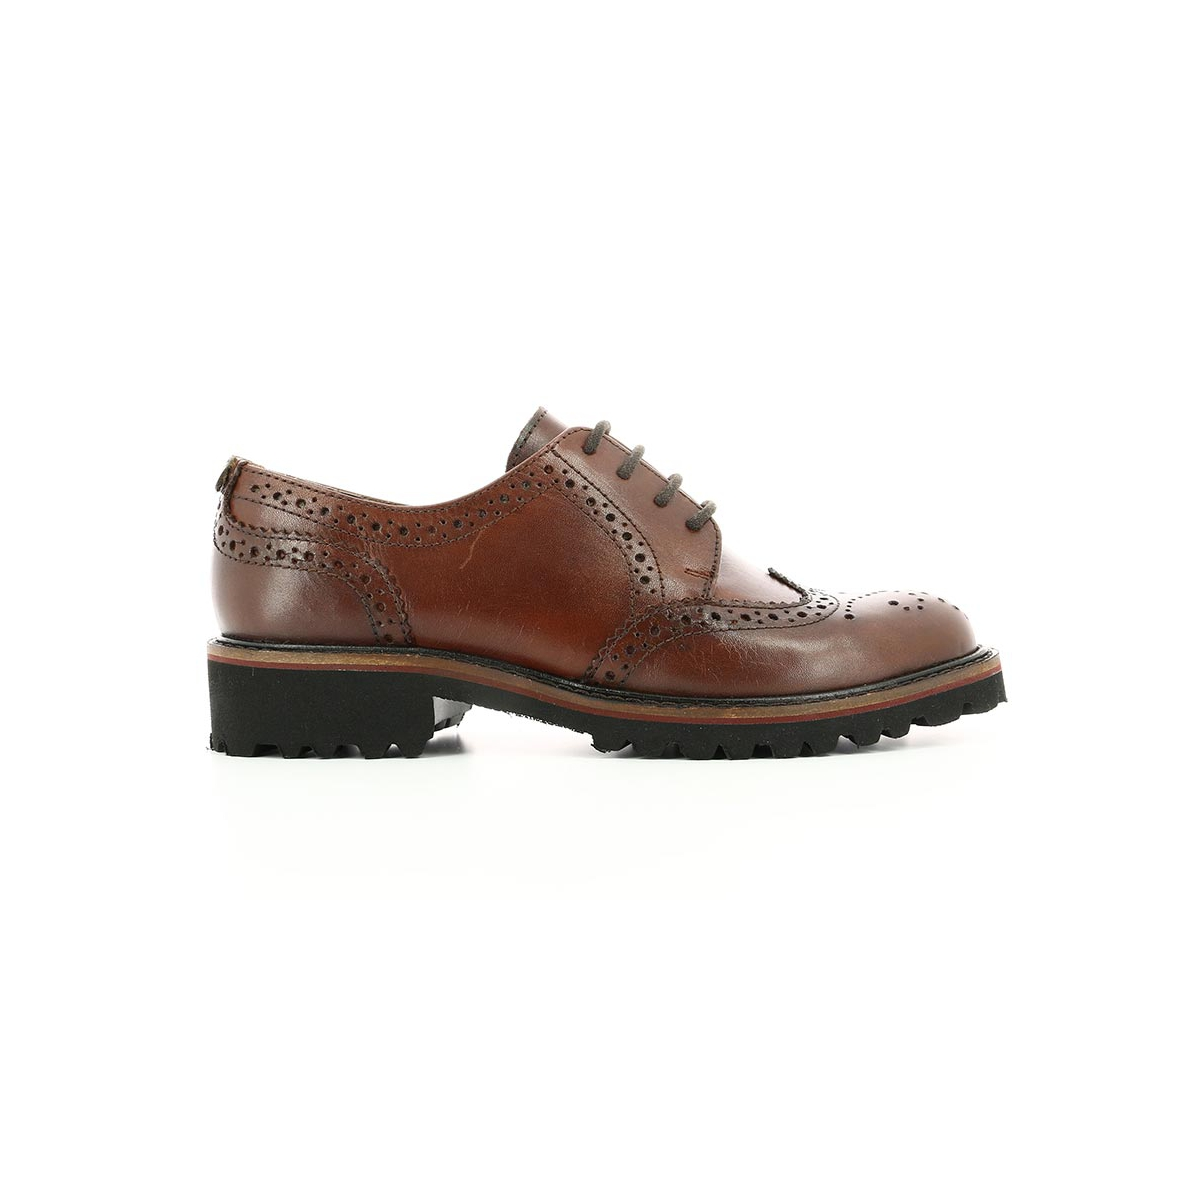 Women's shoes RONY BROWN Kickers